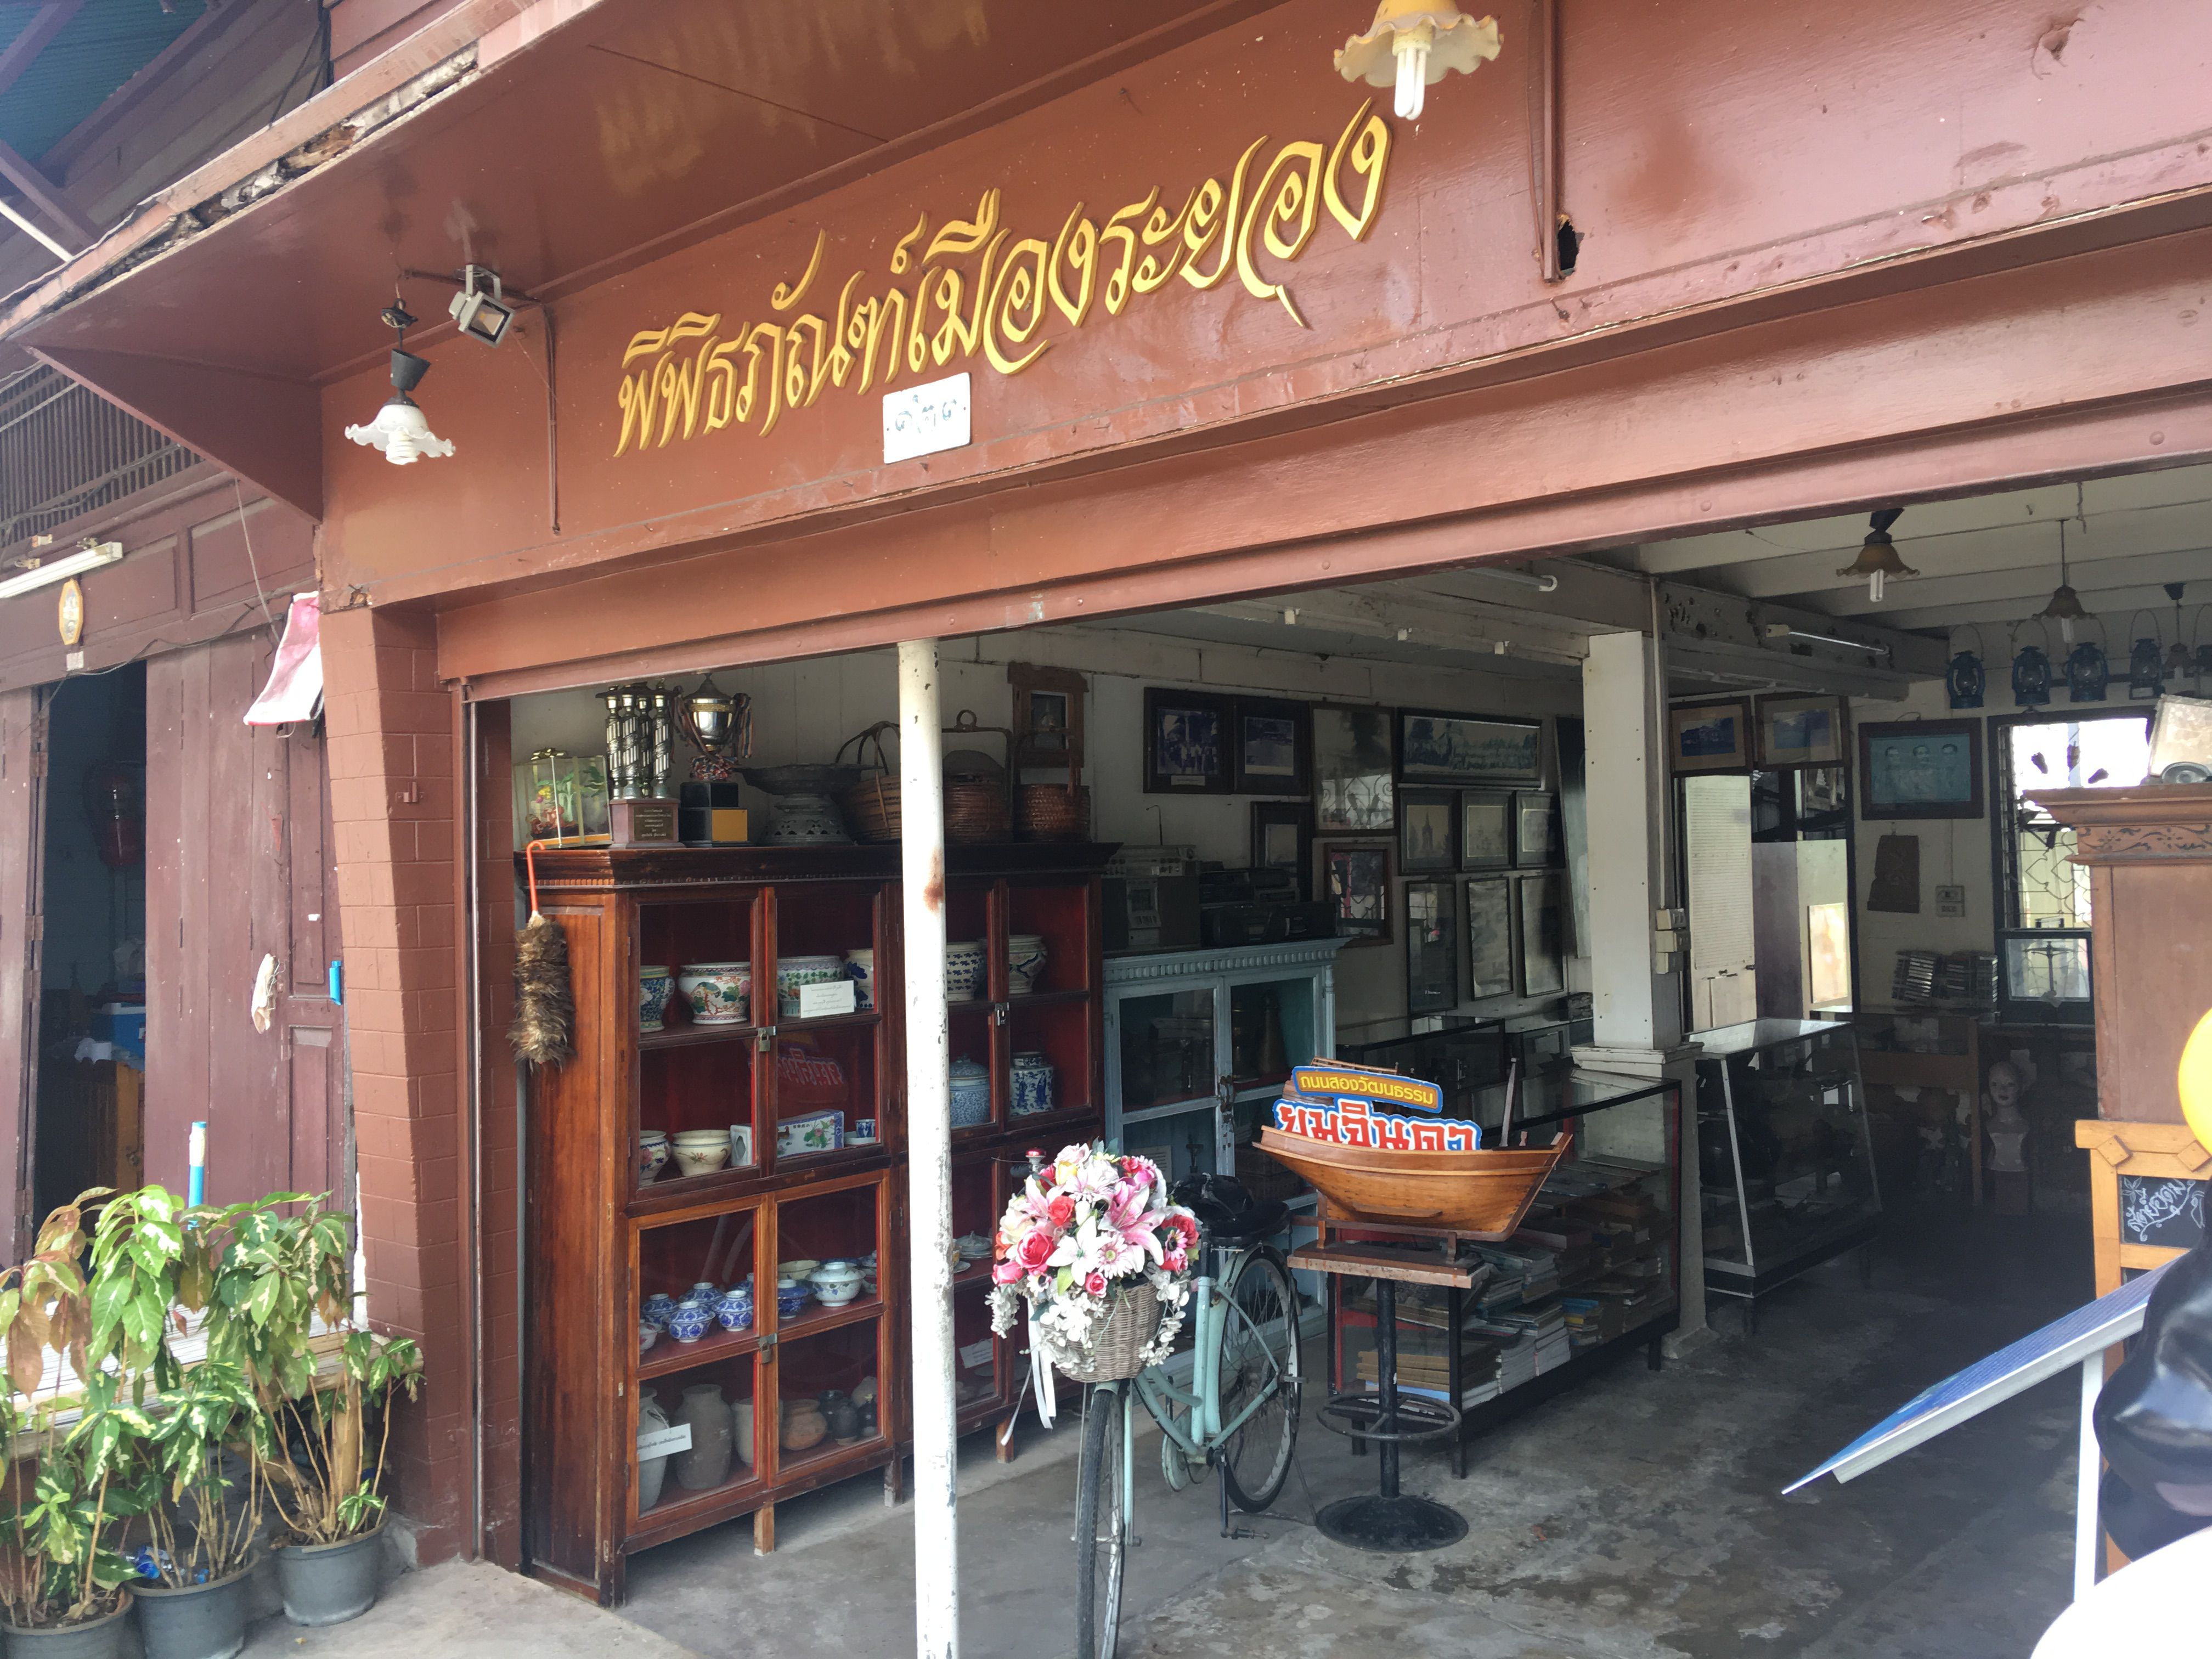 A museum on Yomjinda Road in Rayong, Thailand